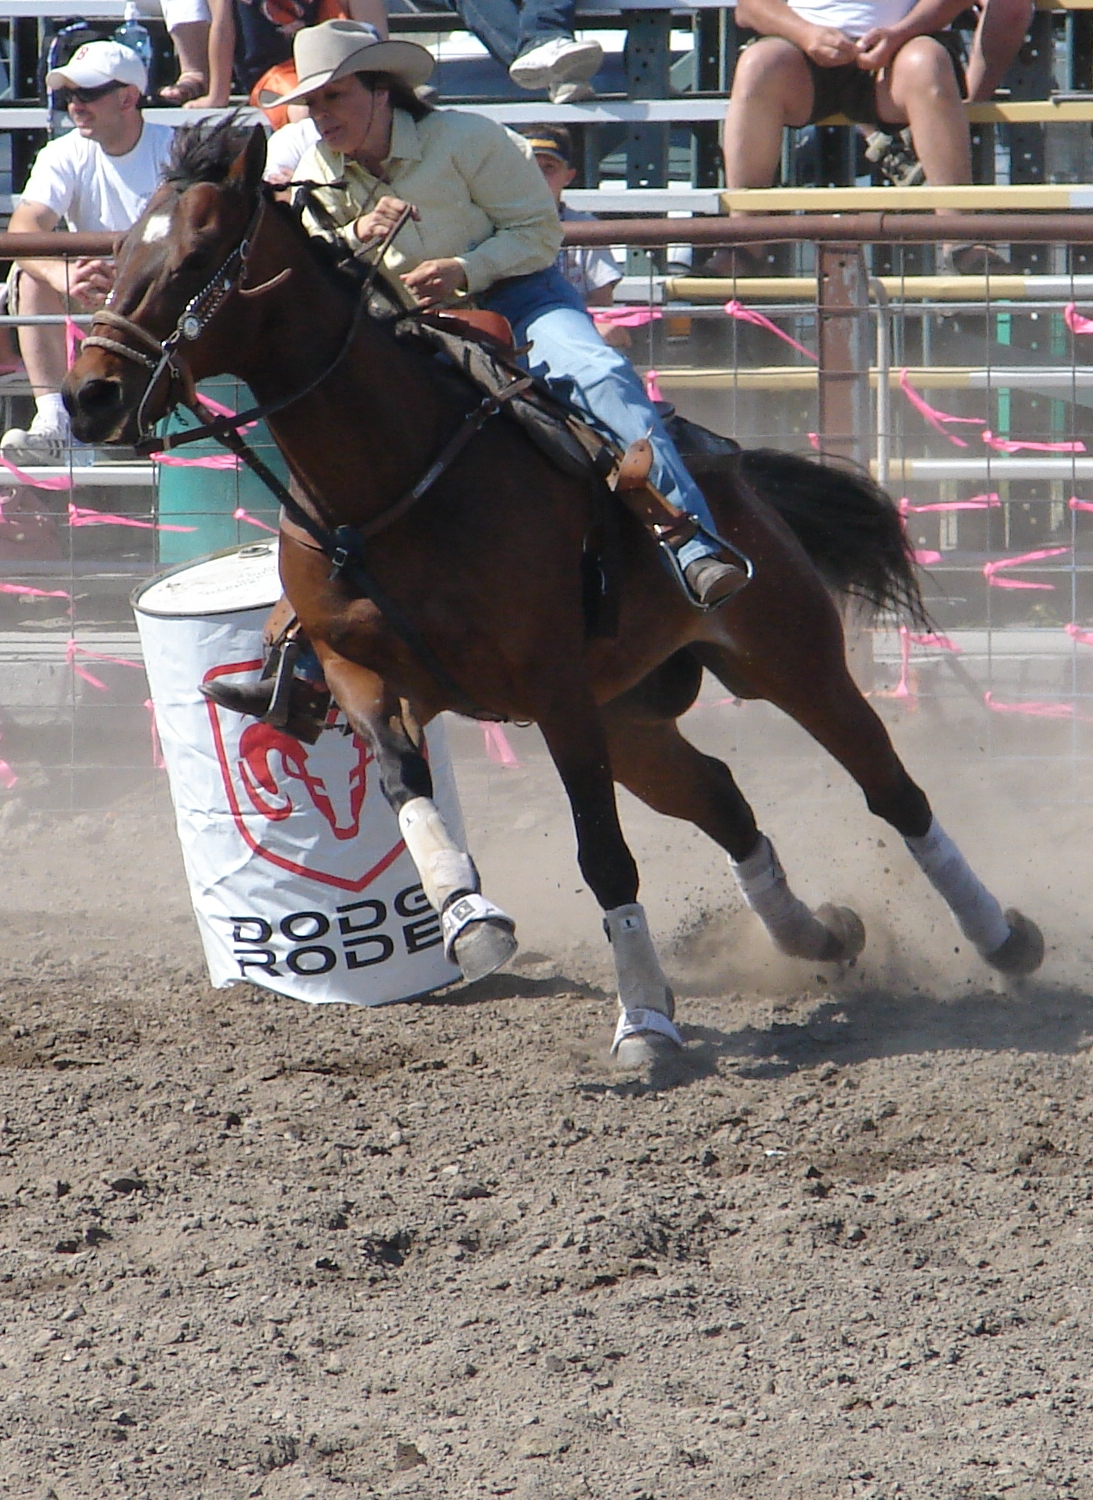 Black quarter horses barrel racing - photo#2